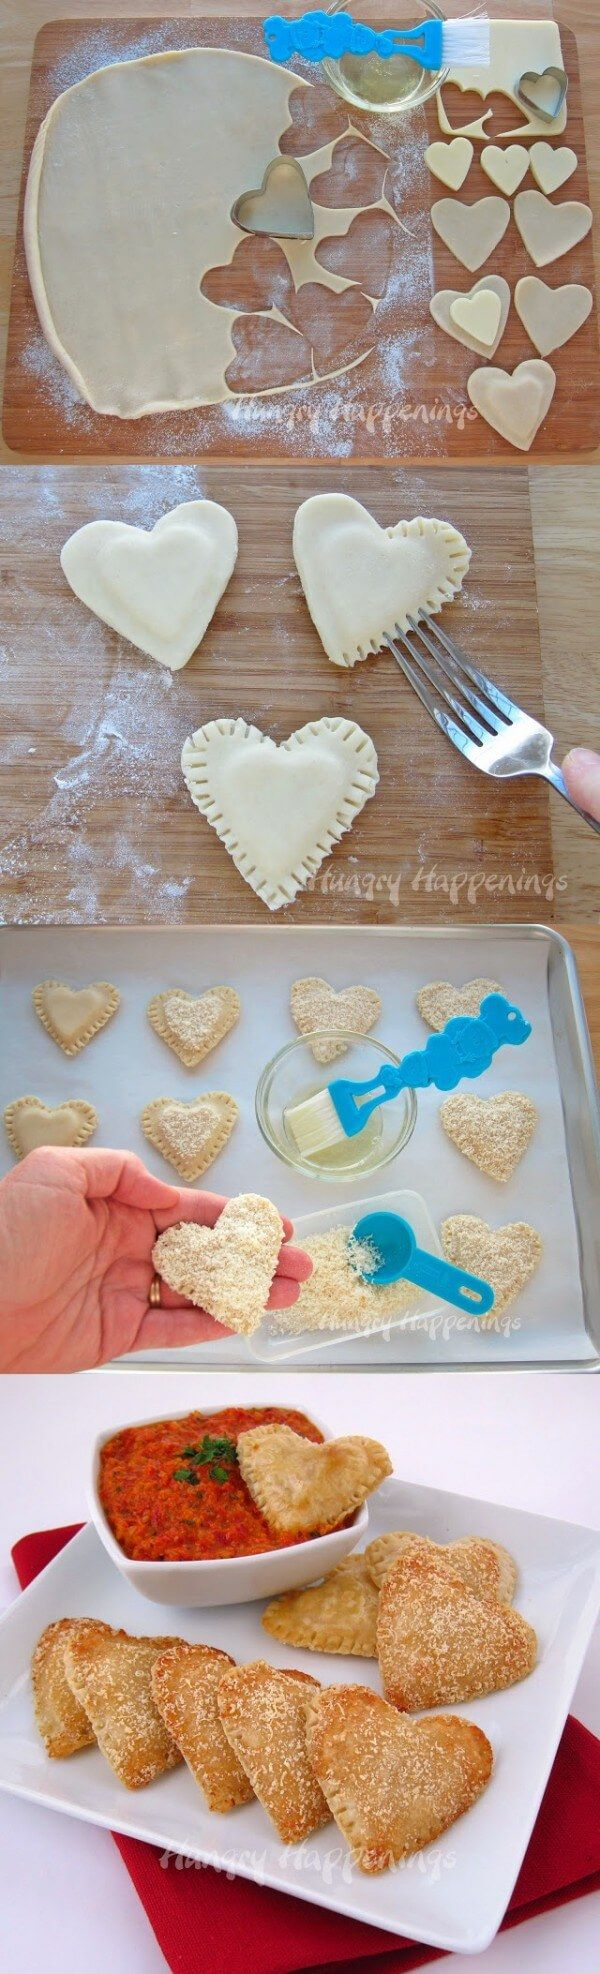 27 Creative Valentine's Day Dinner Ideas to Show Your Love